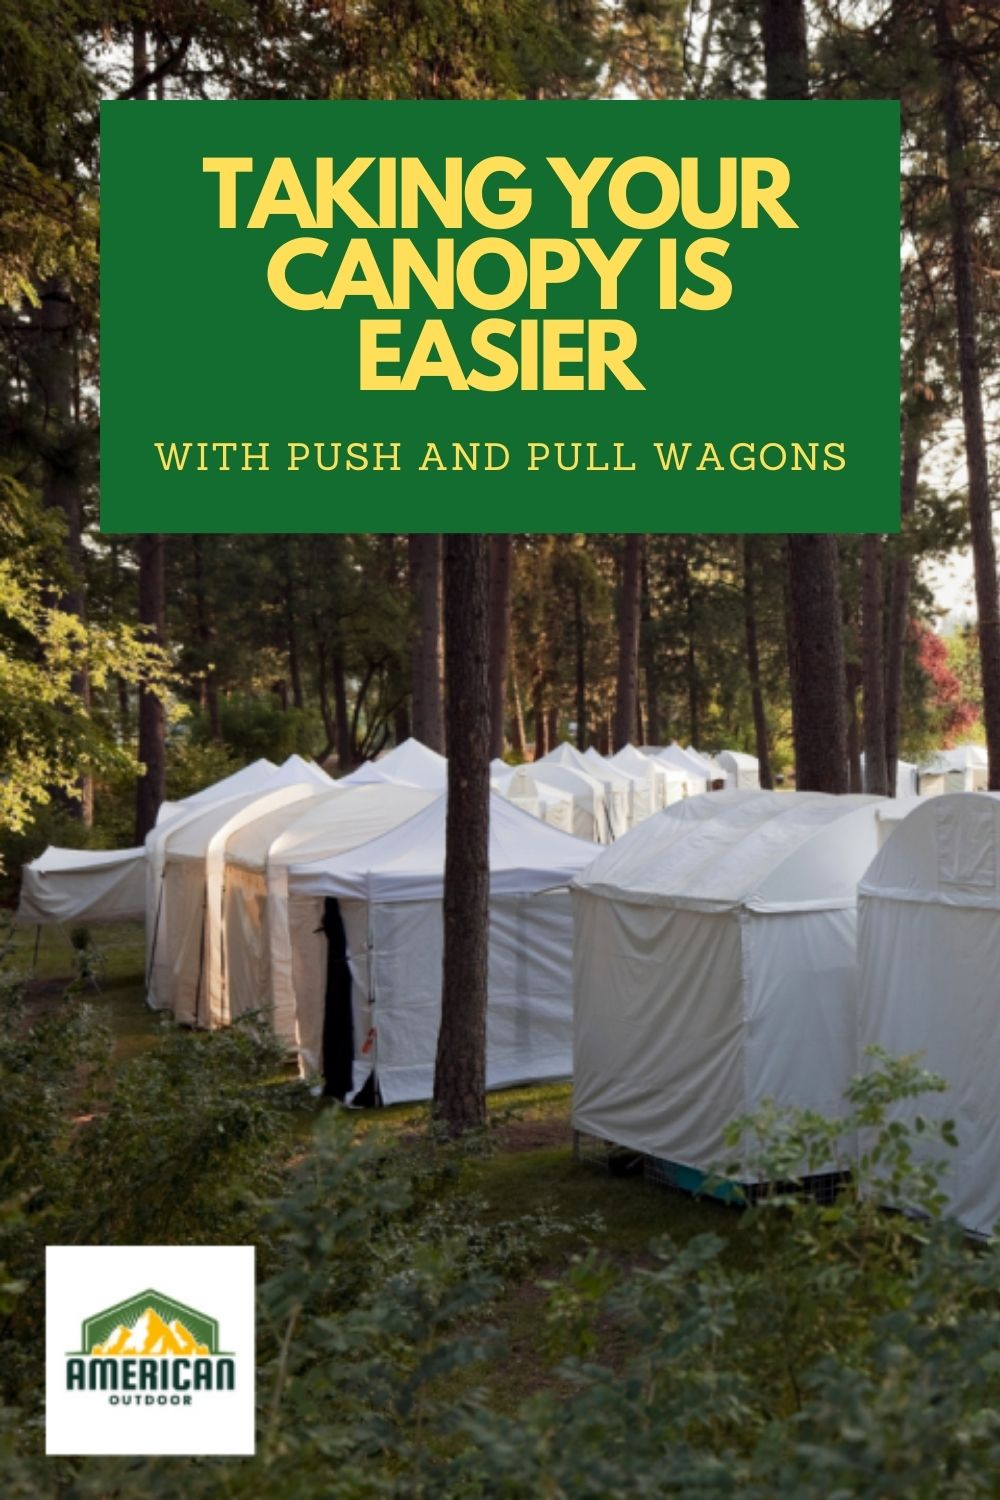 Push and Pull Wagons Can Make Carrying Your Canopy Much Easier